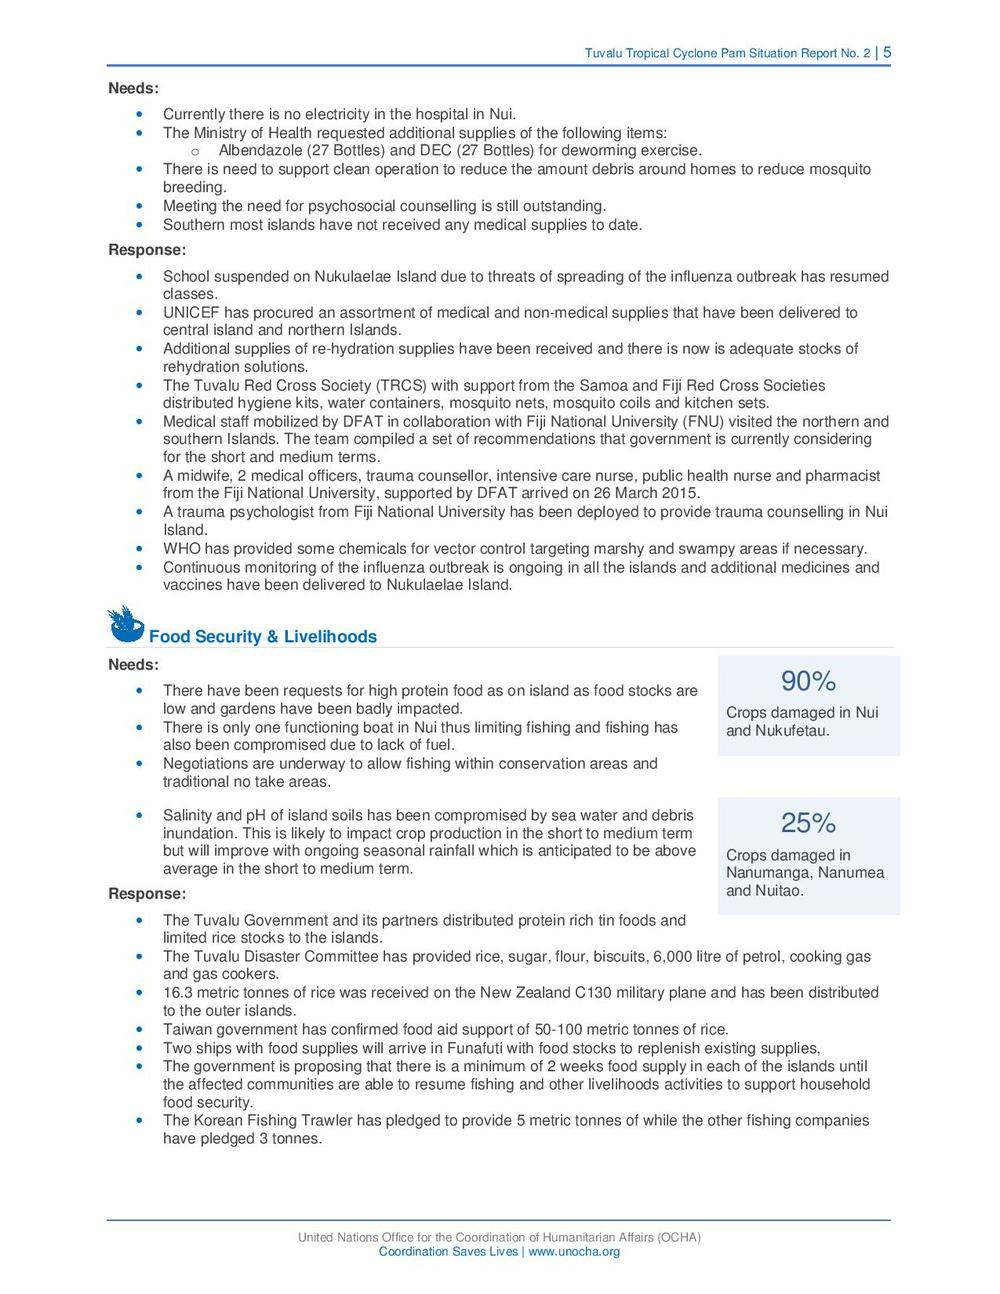 reliefweb.int_sites_reliefweb.int_files_resources_Tuvalu Tropical Cyclone Pam Situation Report No. 3-page-005.jpg